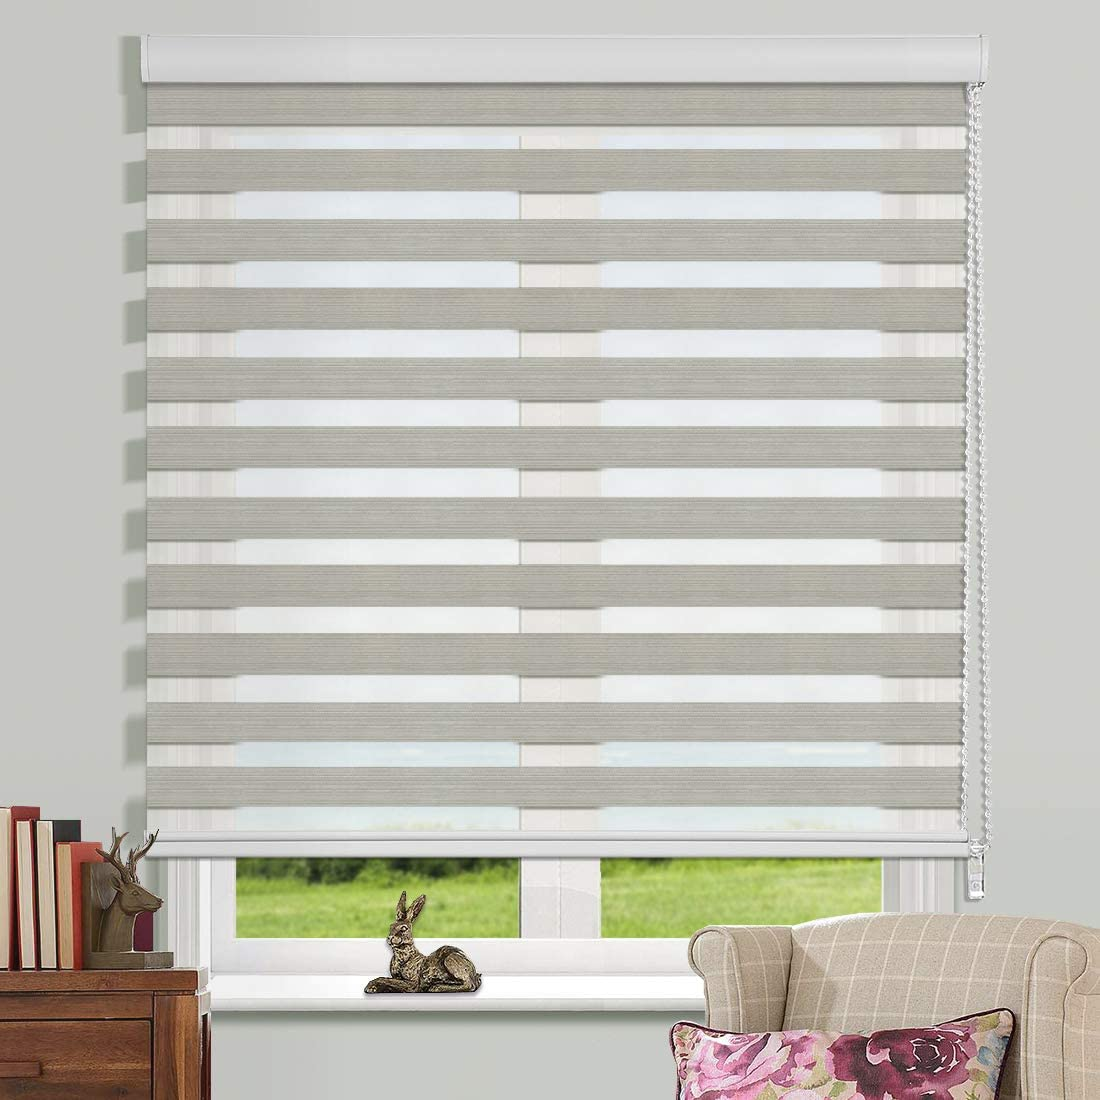 Keego Window Blinds Custom Cut to Size, Zebra Blinds Dual Layer Roller Shades, Waterproof Blackout, Grey, W 55 x H 72 inch , Sheer or Privacy Light Control Day and Night Window Curtains